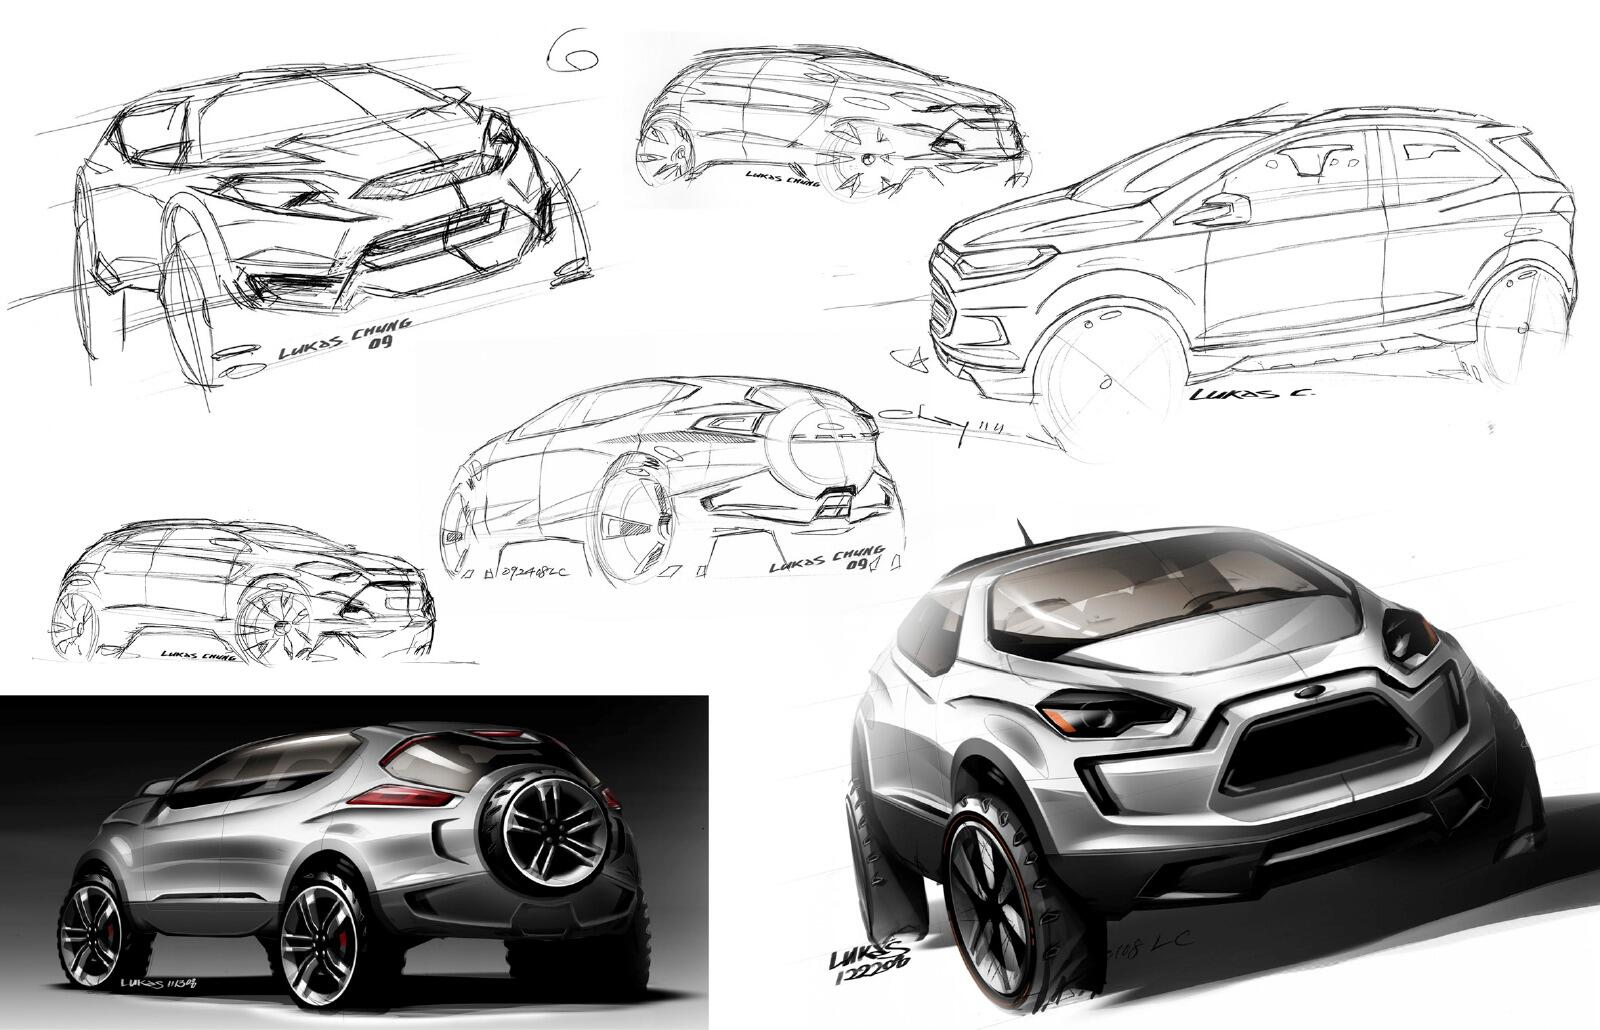 Pic of the Day #185 – Sketch development of the 2012 Ford EcoSport by designer Lukas Chung http://t.co/Lhjal1dbDi